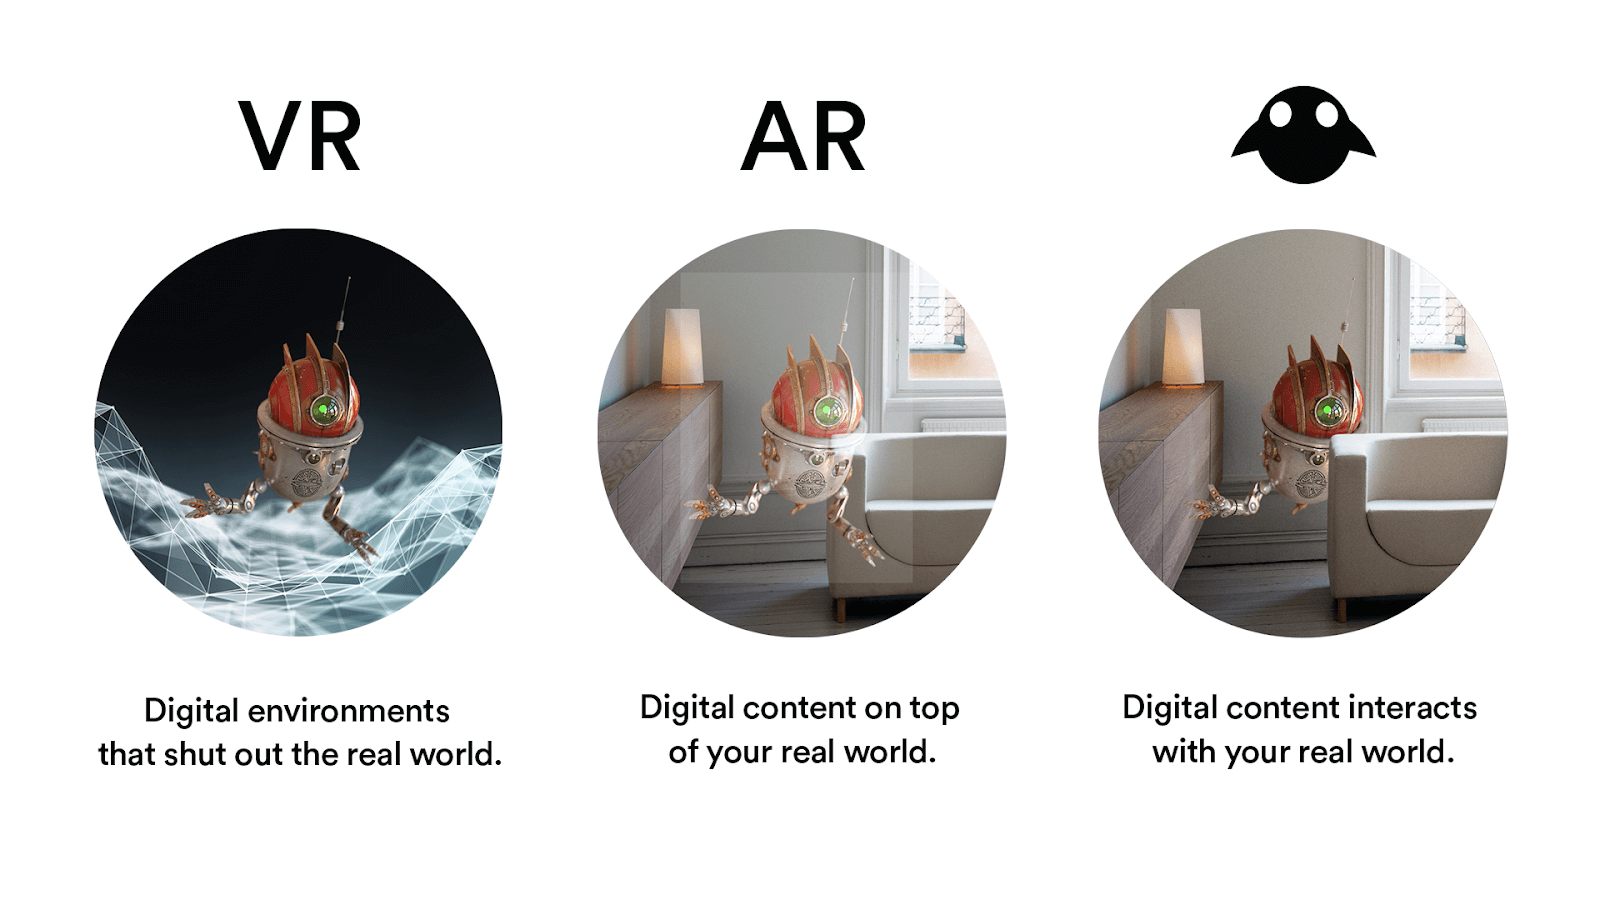 Picture describing VR, AR and MR technology